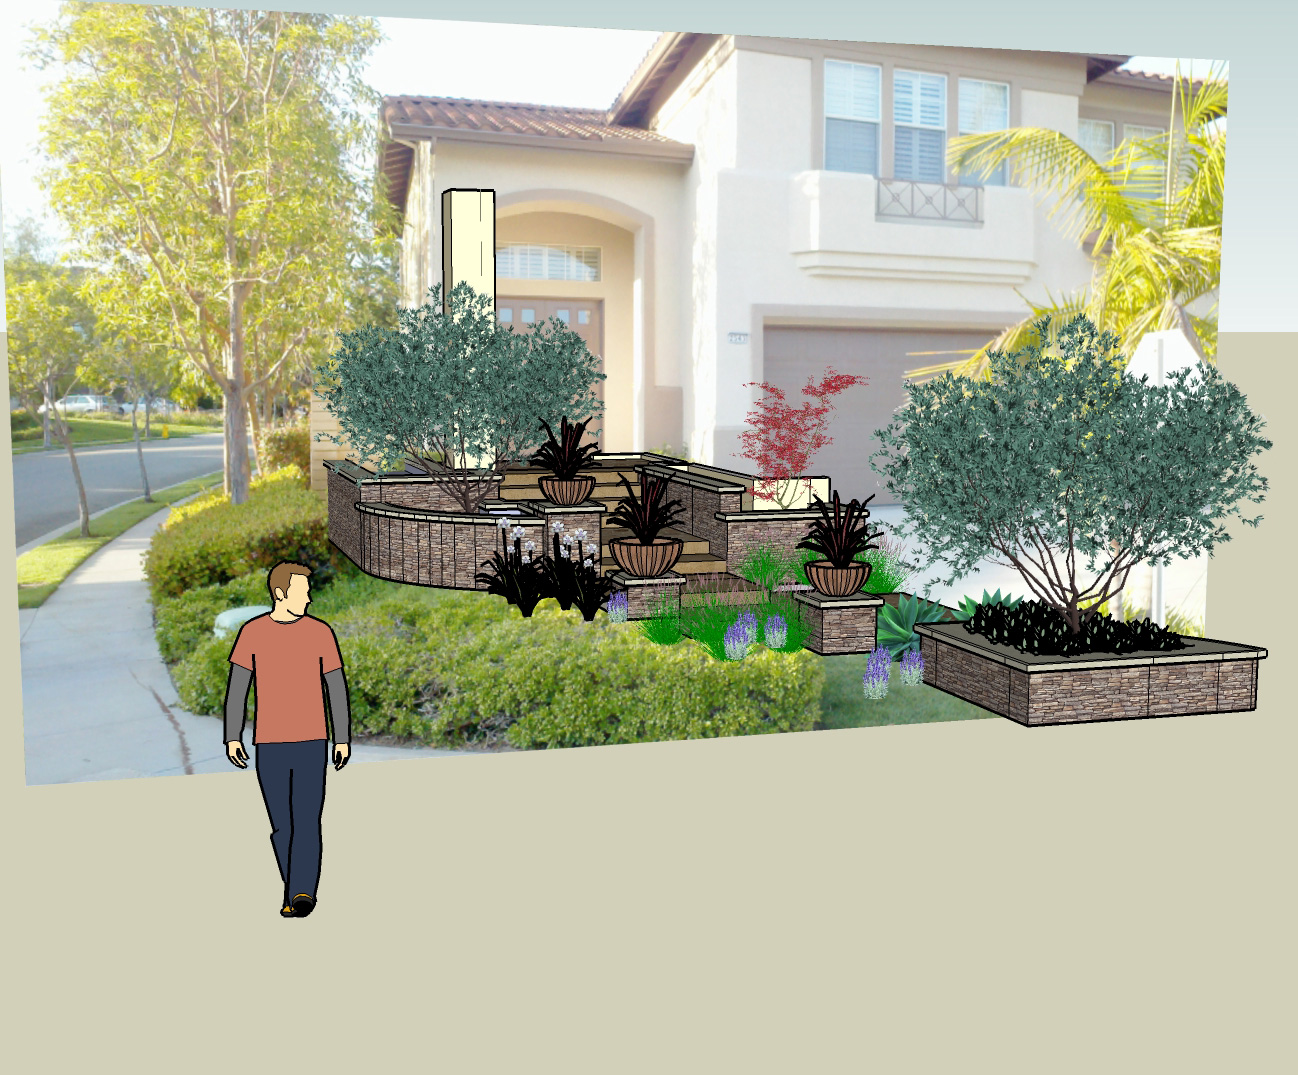 SKETCH UP RENDERINGS CAN BE INSERTED INTO EXISTING PHOTOGRAPHS TO DEMONSTRATE THE INSTALLED DESIGN.